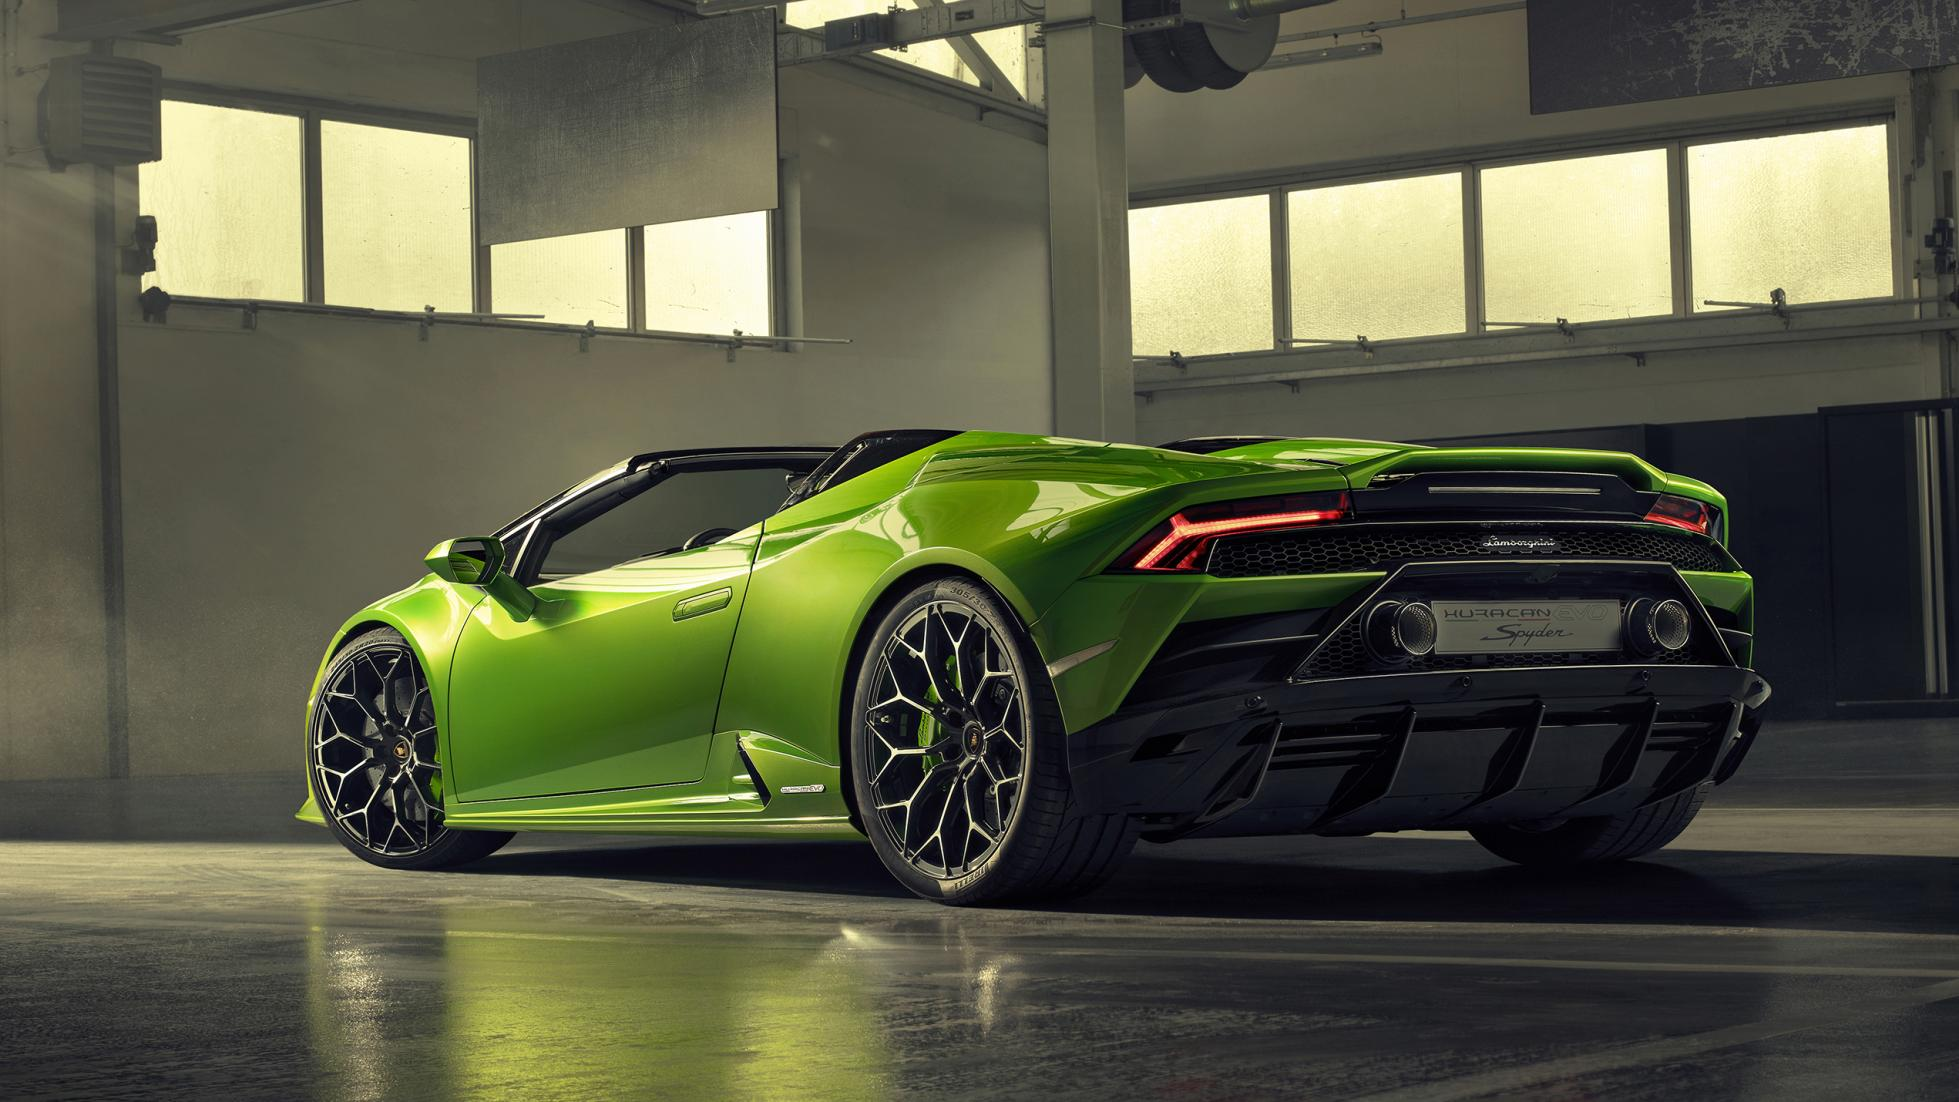 2019 Lamborghini Huracan Evo Spyder What Bedroom Posters Are Made